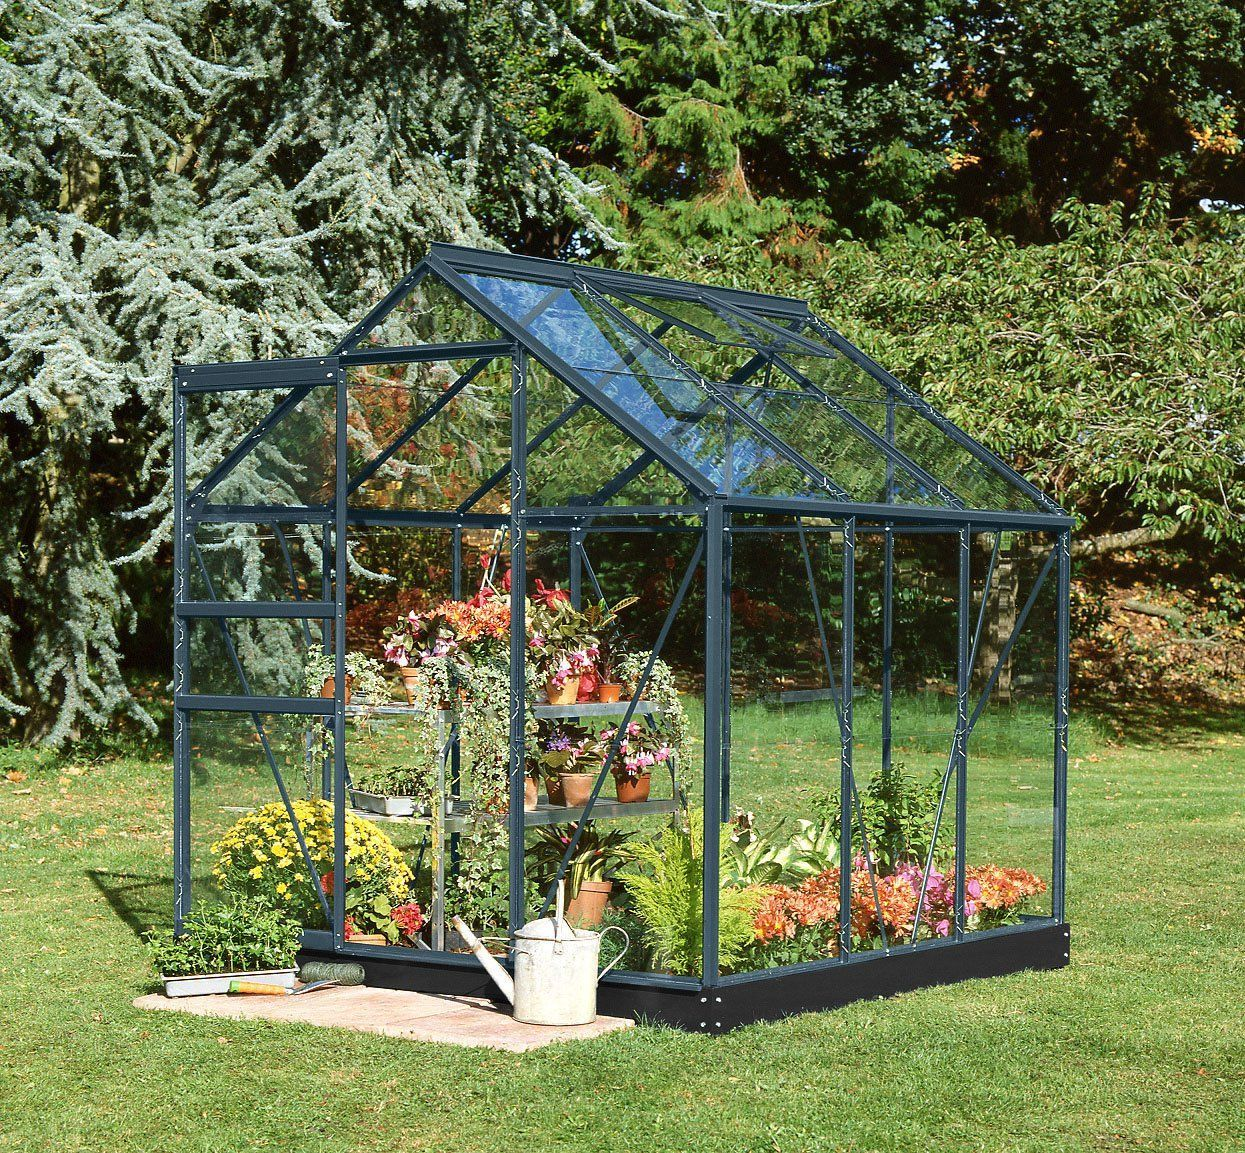 6x6 Anthracite Grey Halls Popular Greenhouse Horticultural Traditional Greenhouses Greenhouse Greenhouses For Sale Backyard greenhouse for sale